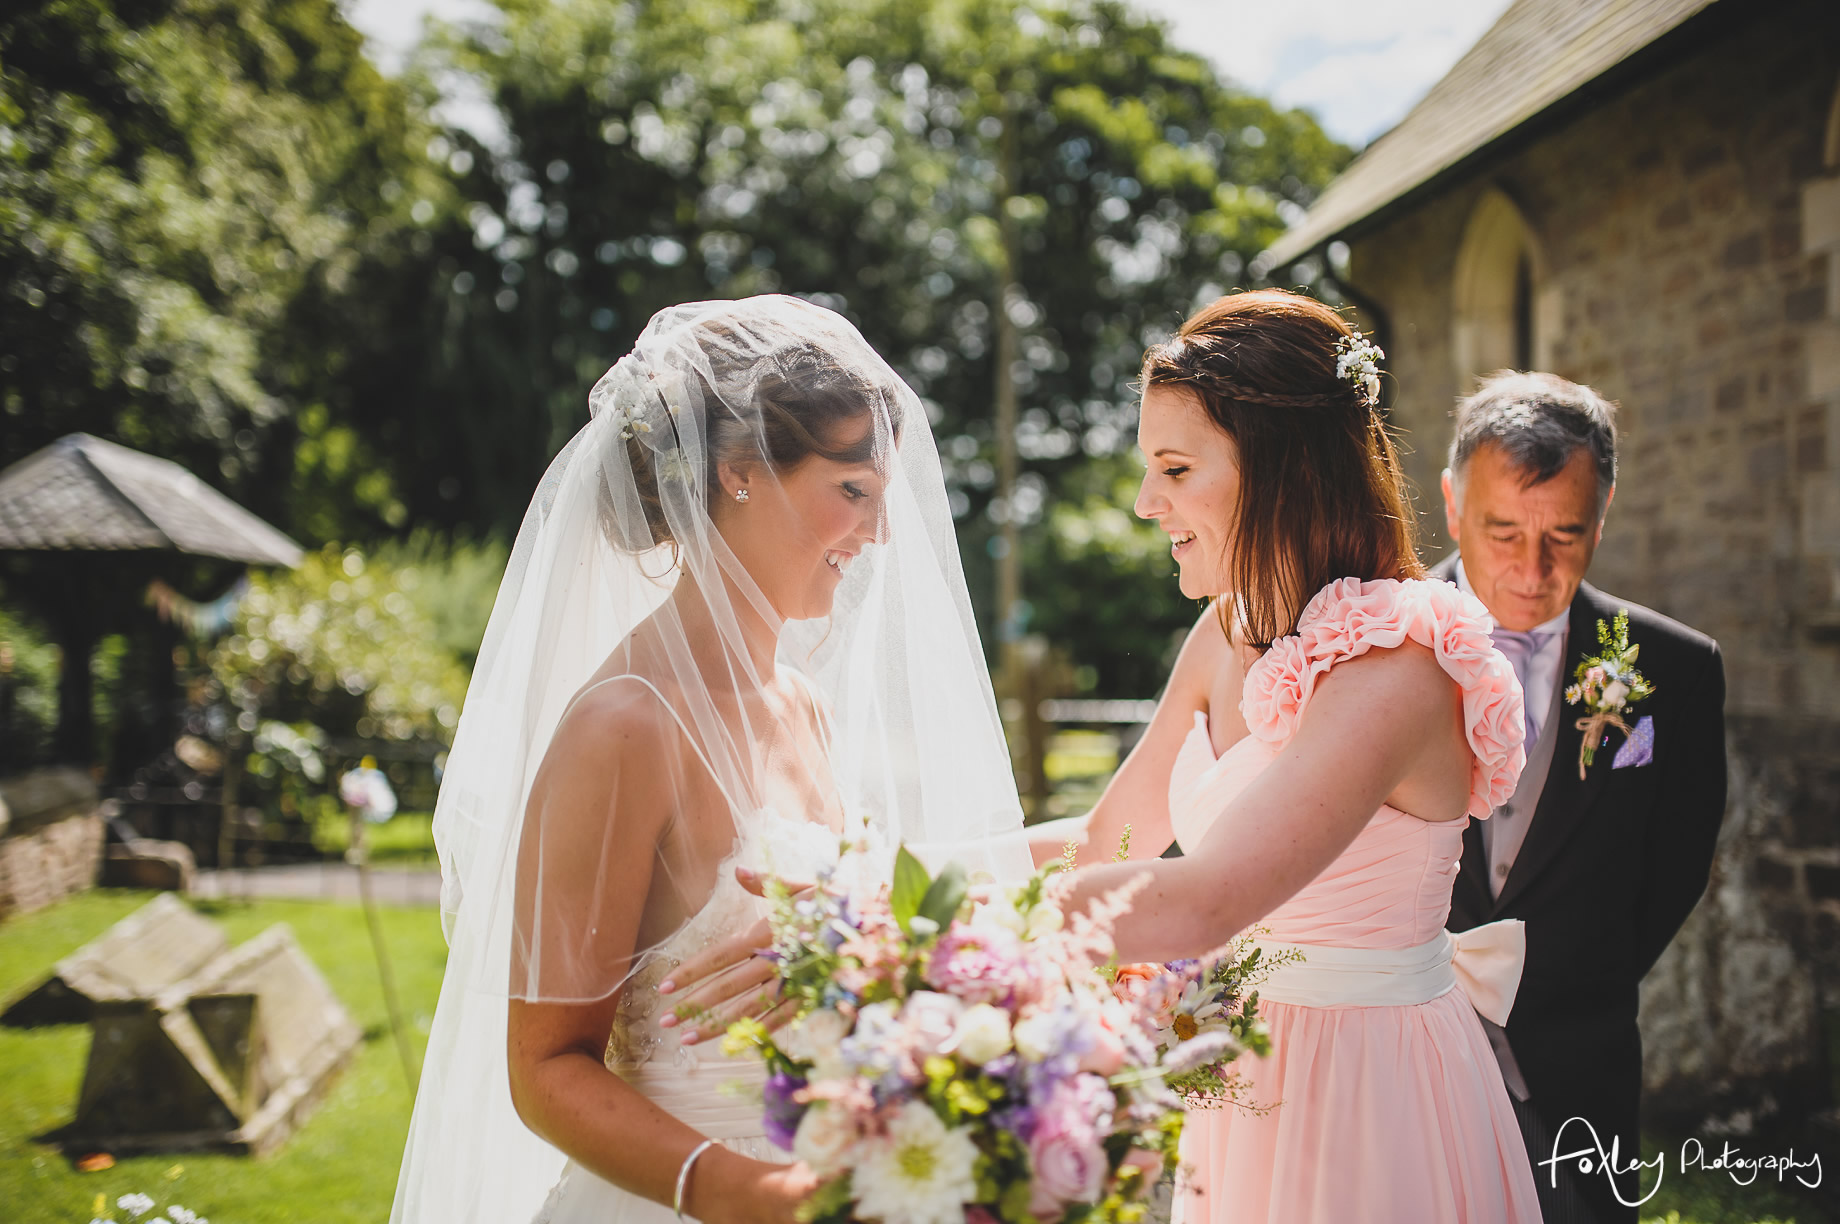 Claire and James' Wedding at Mitton Hall 078